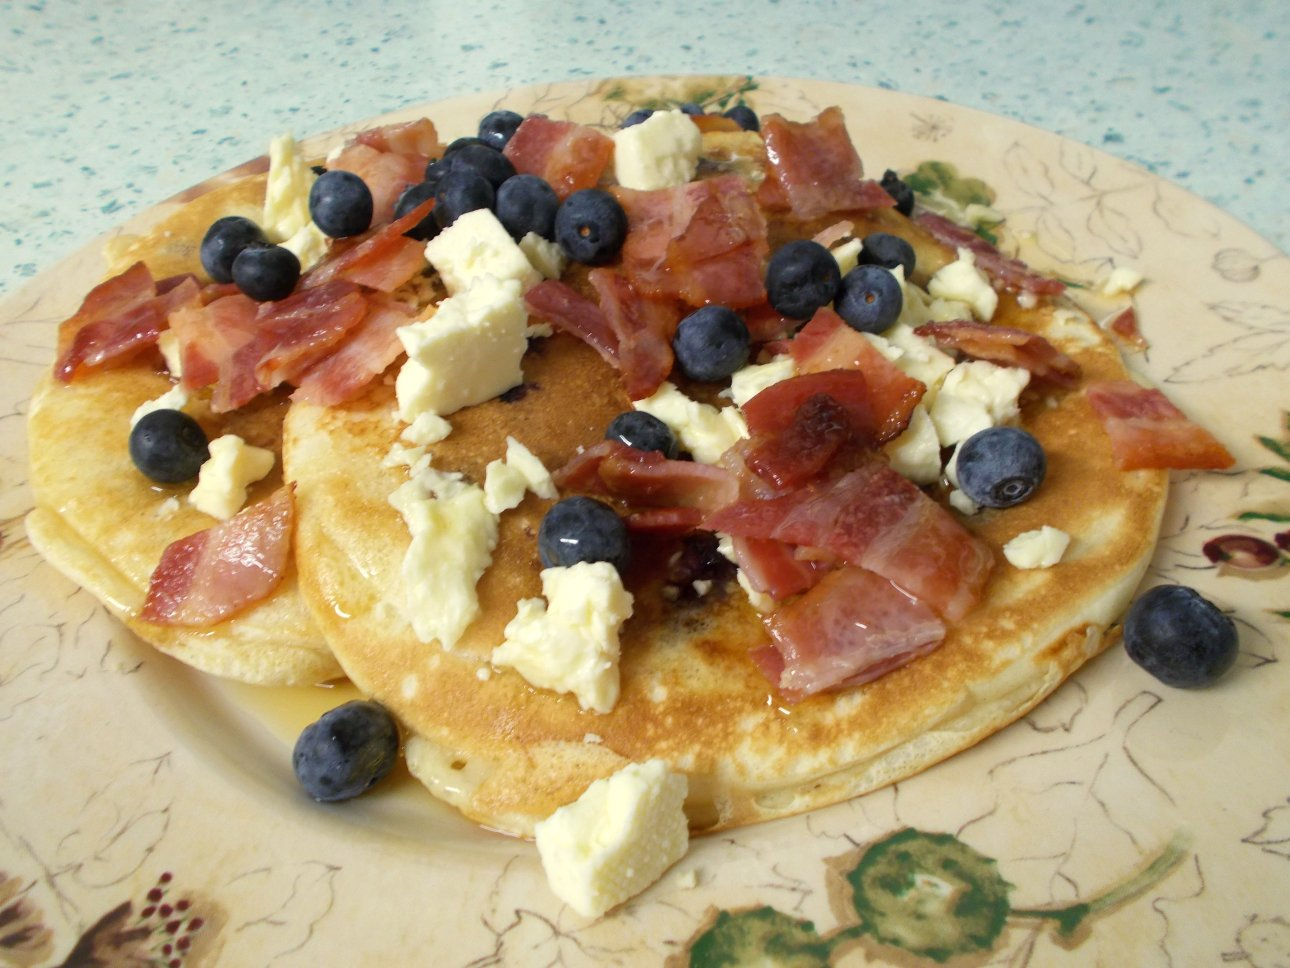 Bacon blueberry & Cheshire pancakes 1.jpg